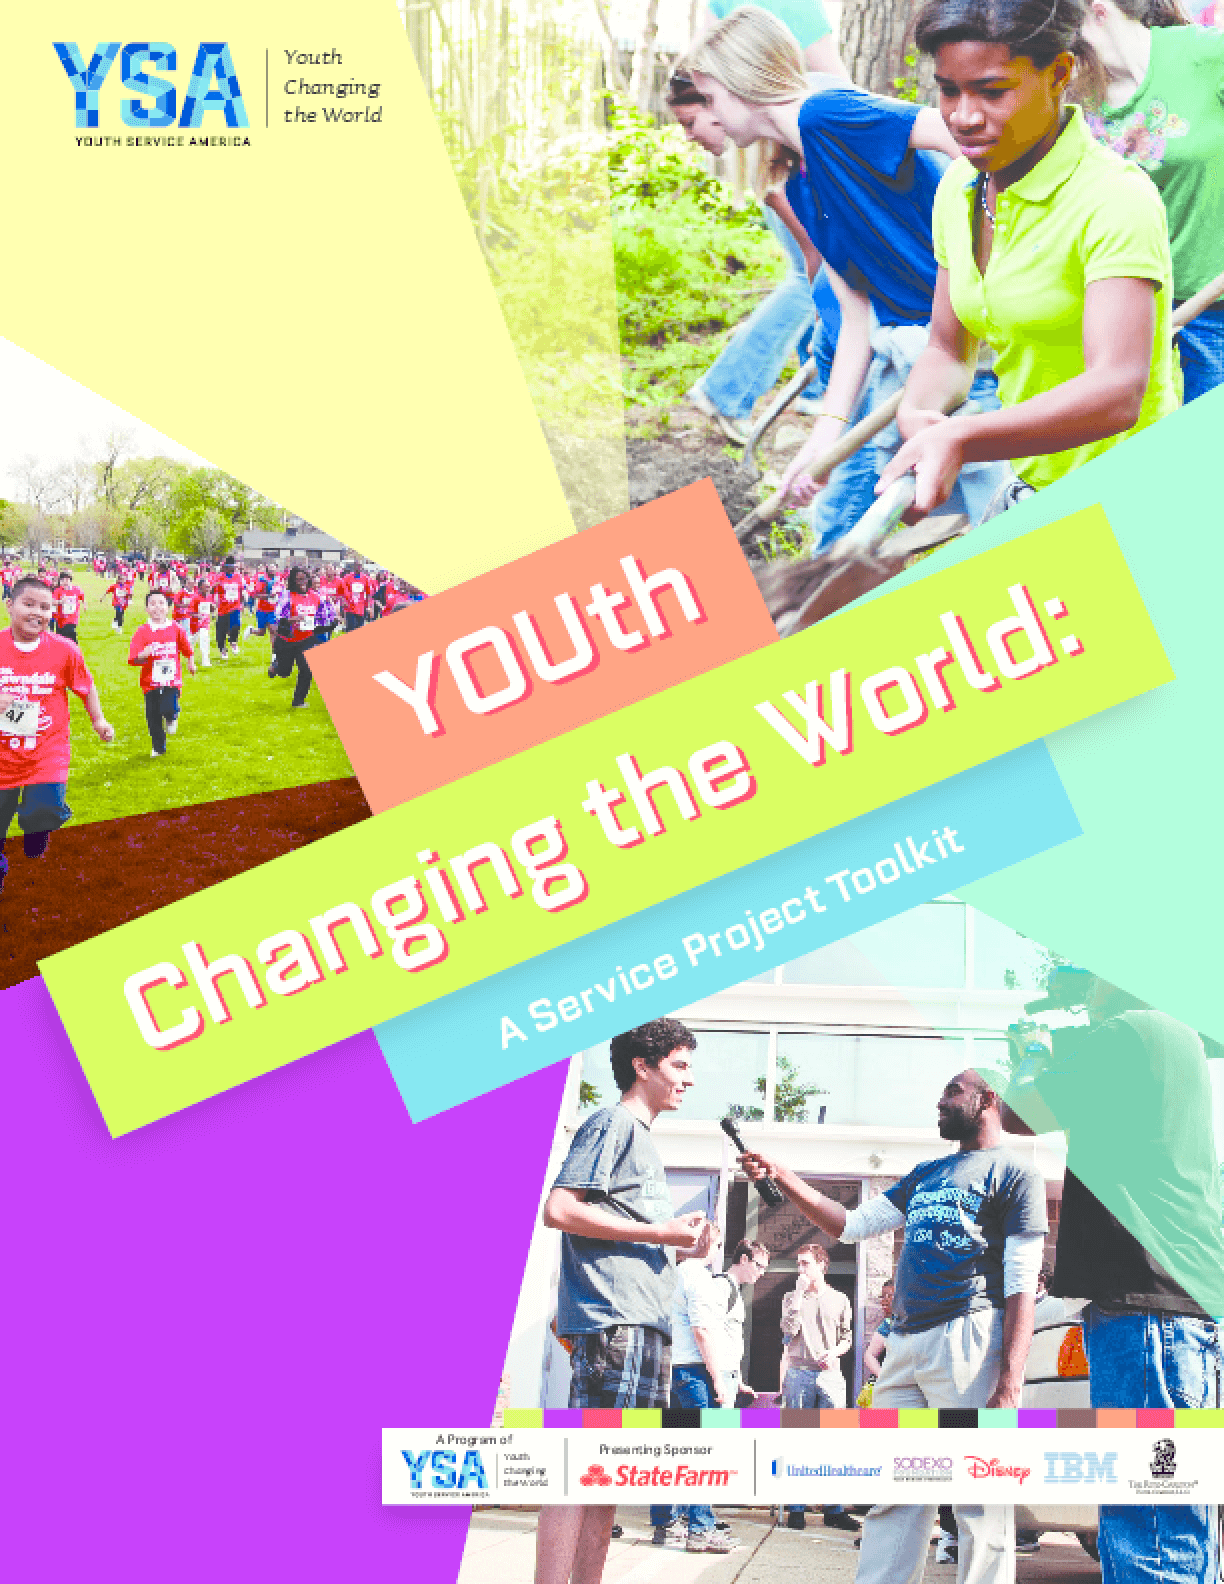 Youth Changing the World: A Service Project Toolkit